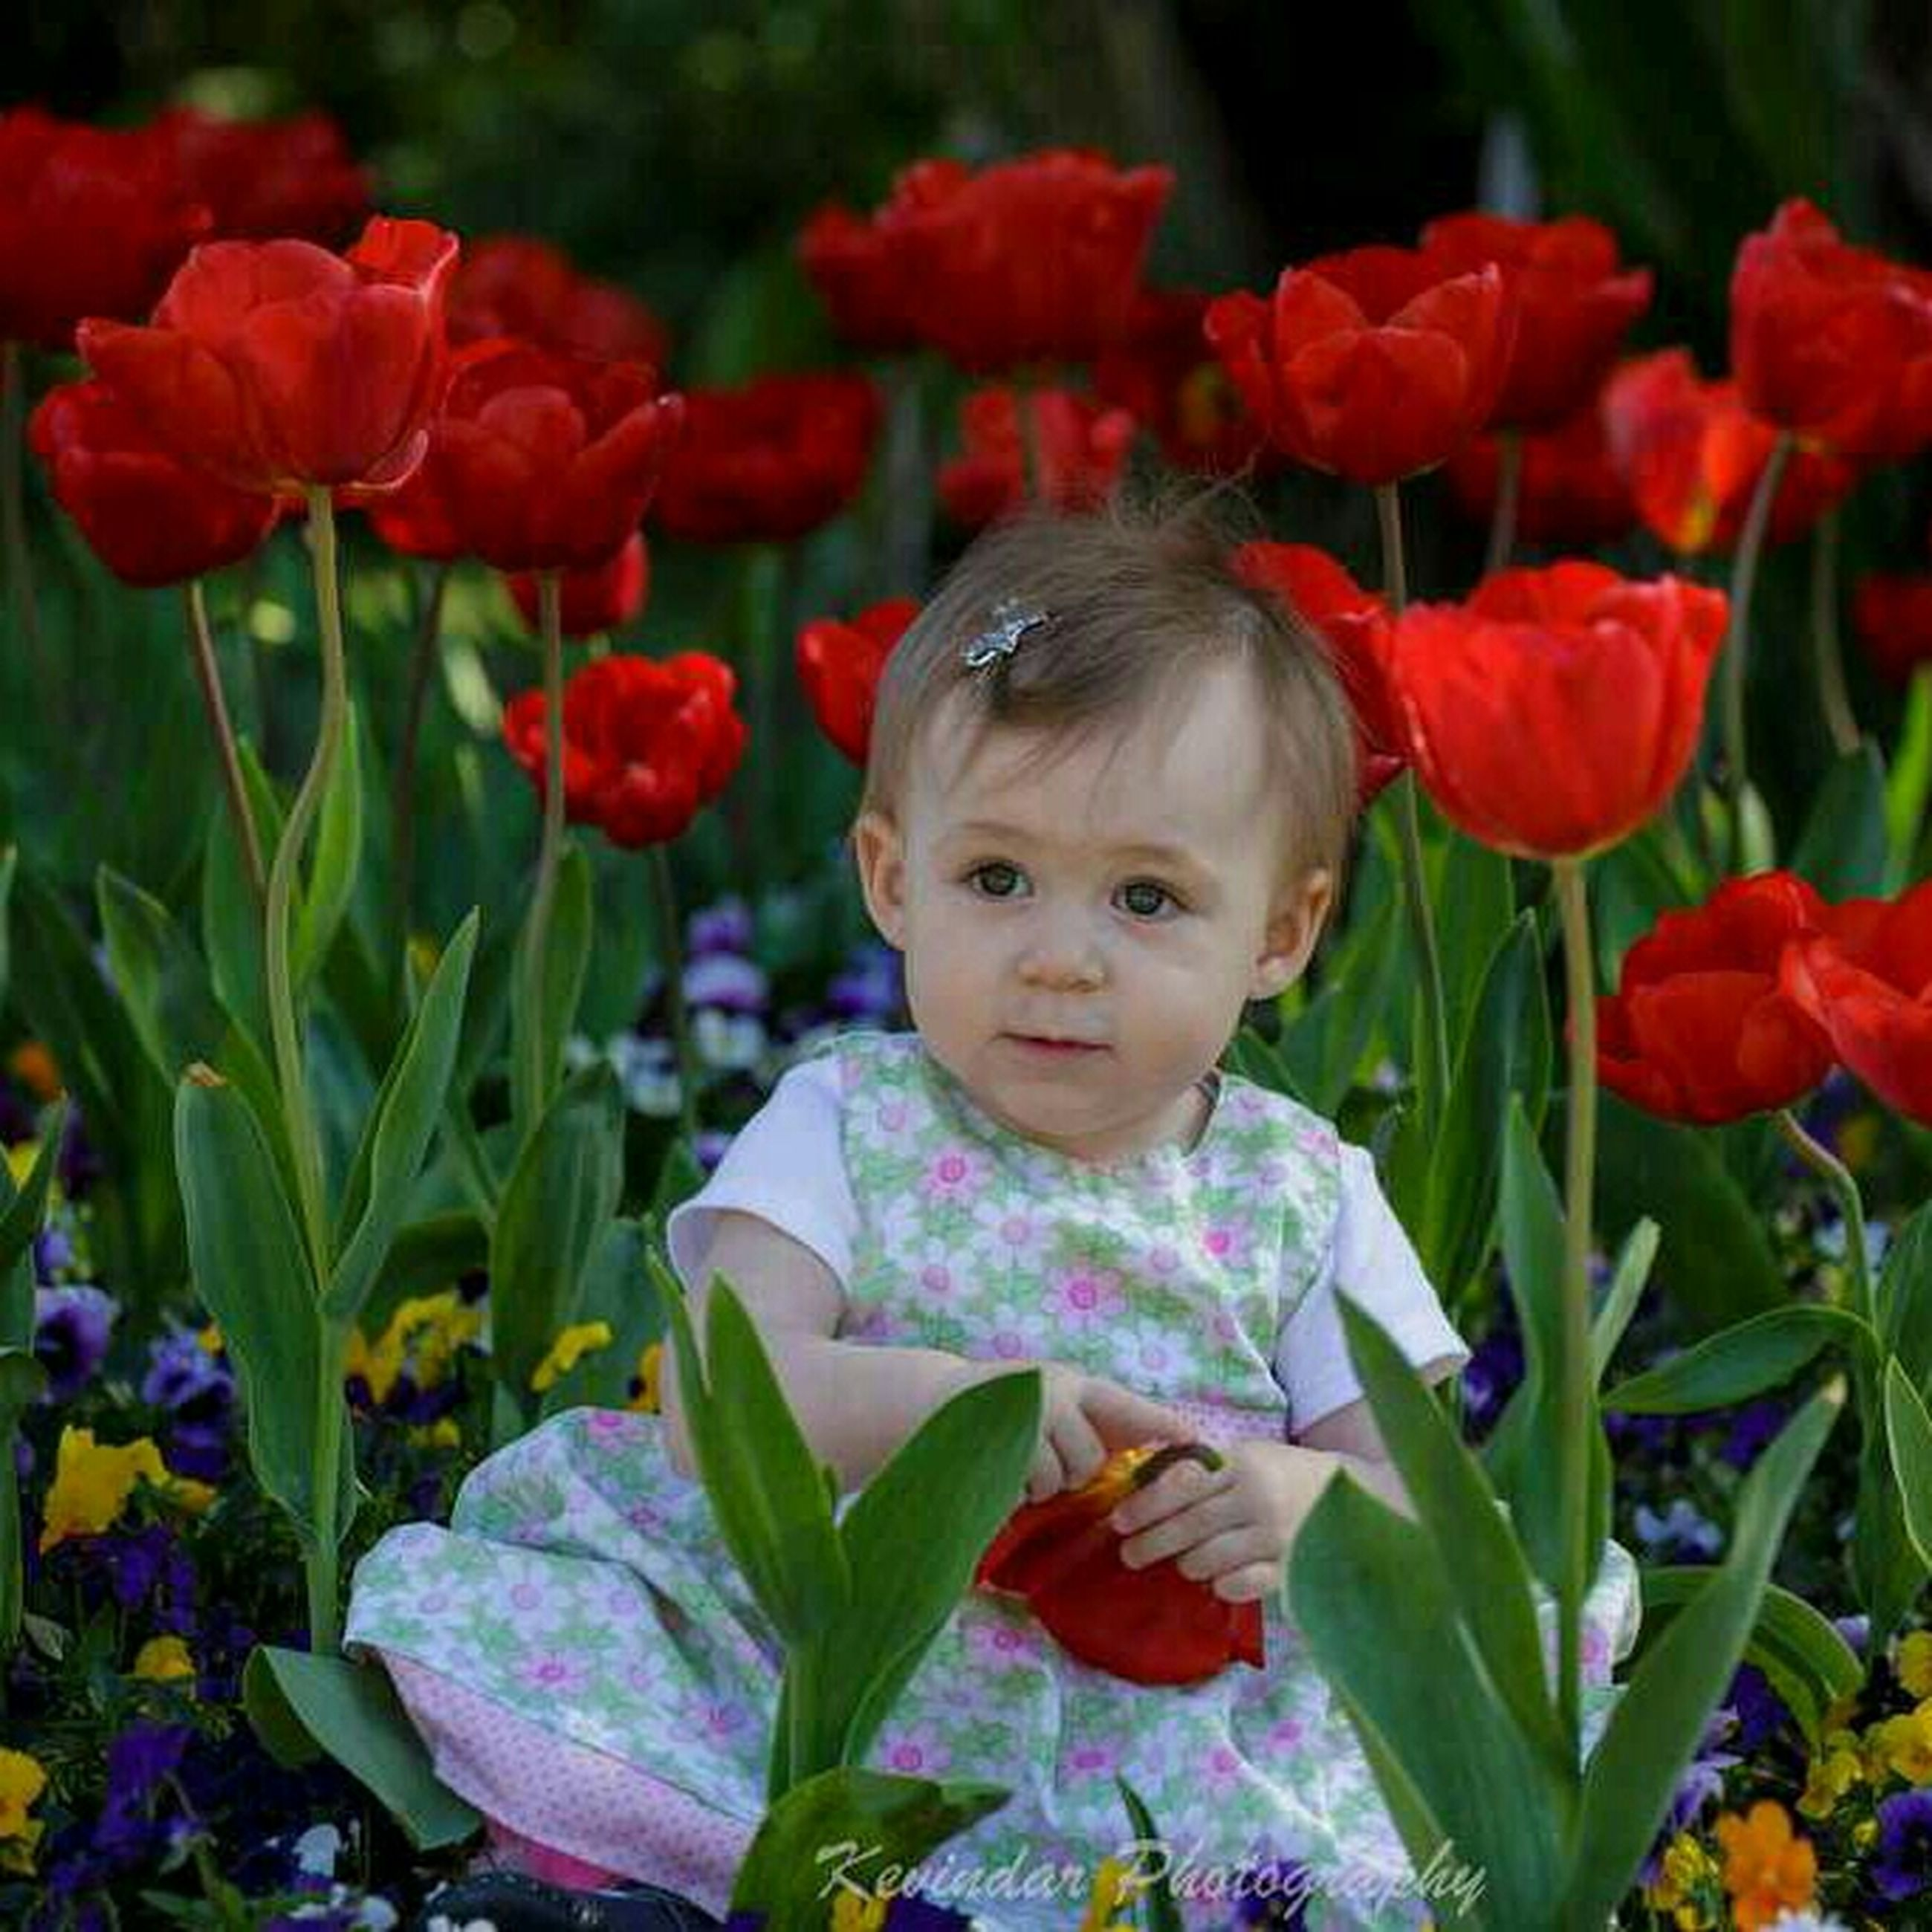 flower, fragility, freshness, childhood, growth, petal, red, flower head, field, plant, tulip, cute, innocence, elementary age, nature, blooming, focus on foreground, beauty in nature, park - man made space, close-up